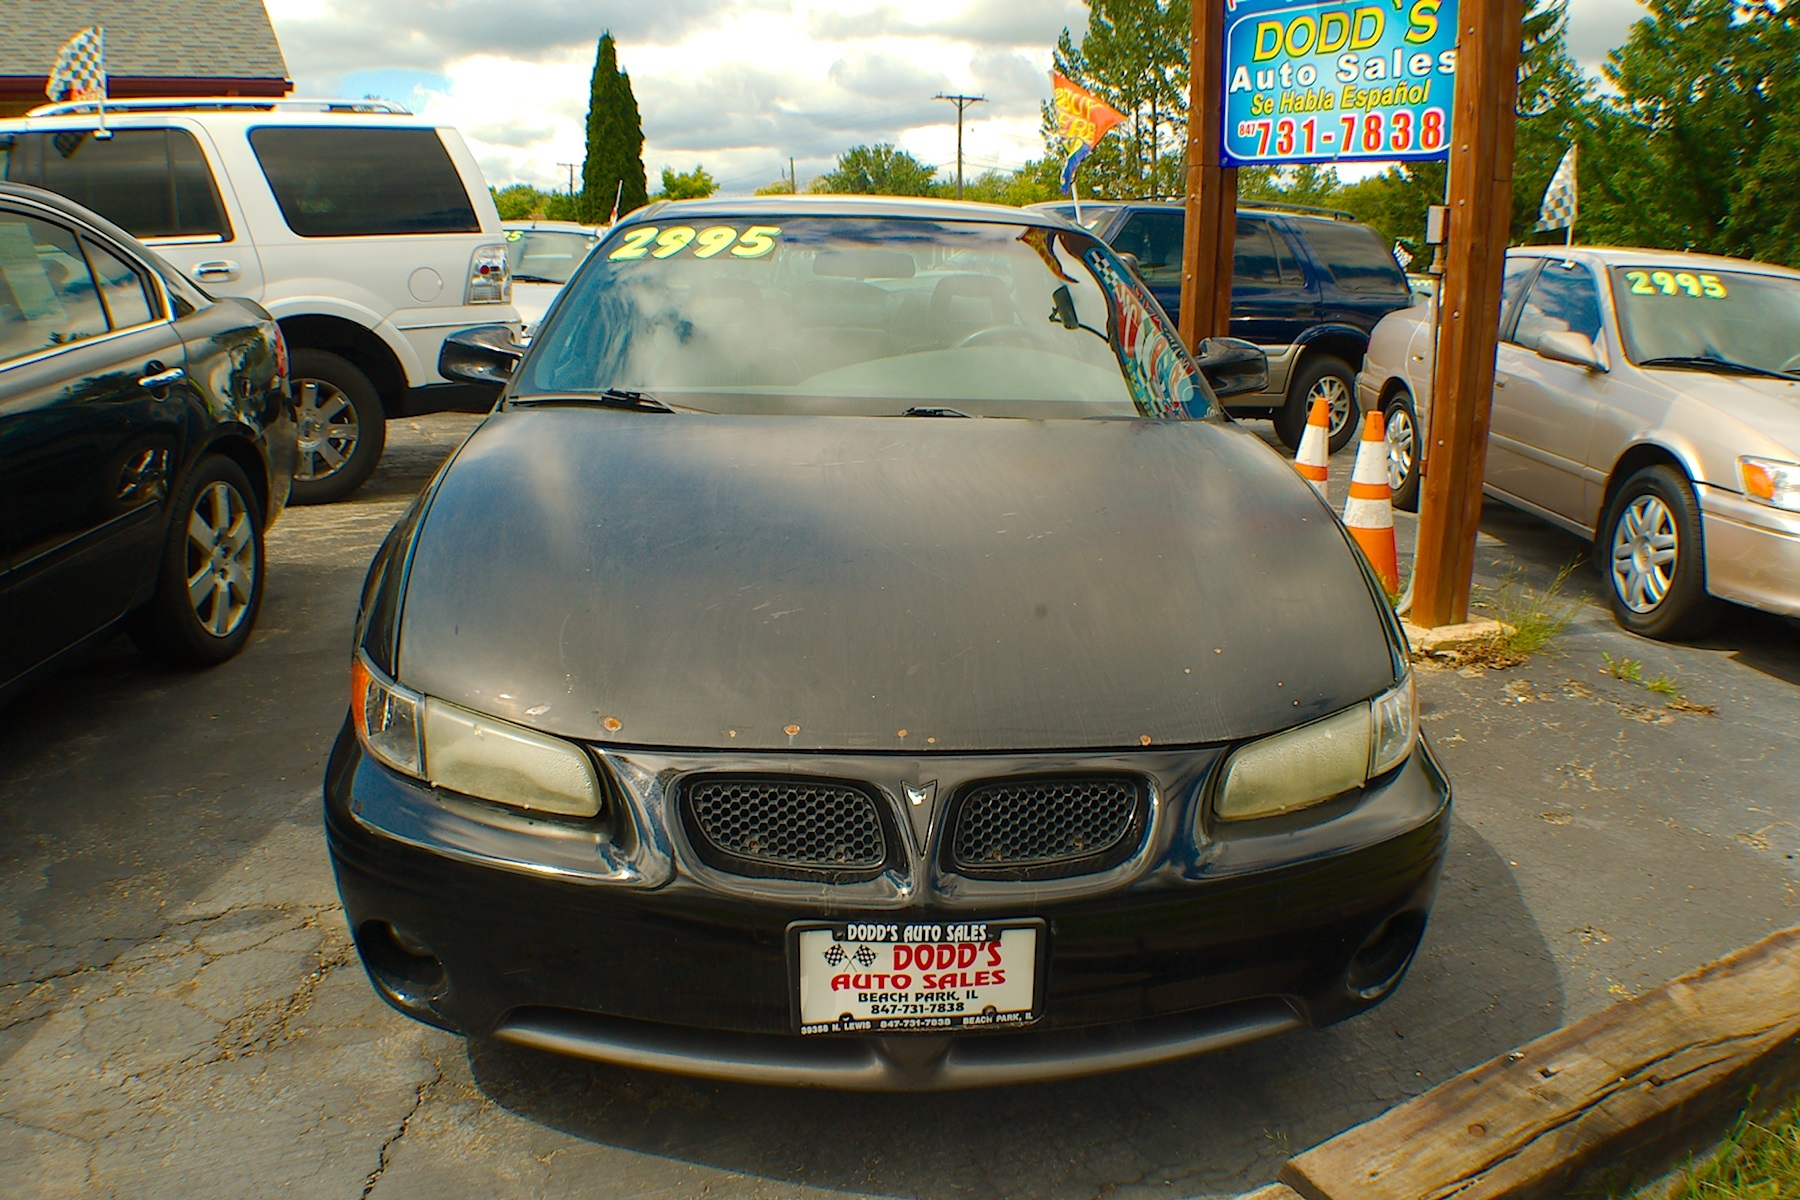 2001 Pontiac Grand Prix Black Sedan Sale Gurnee Kenosha Mchenry Chicago Illinois